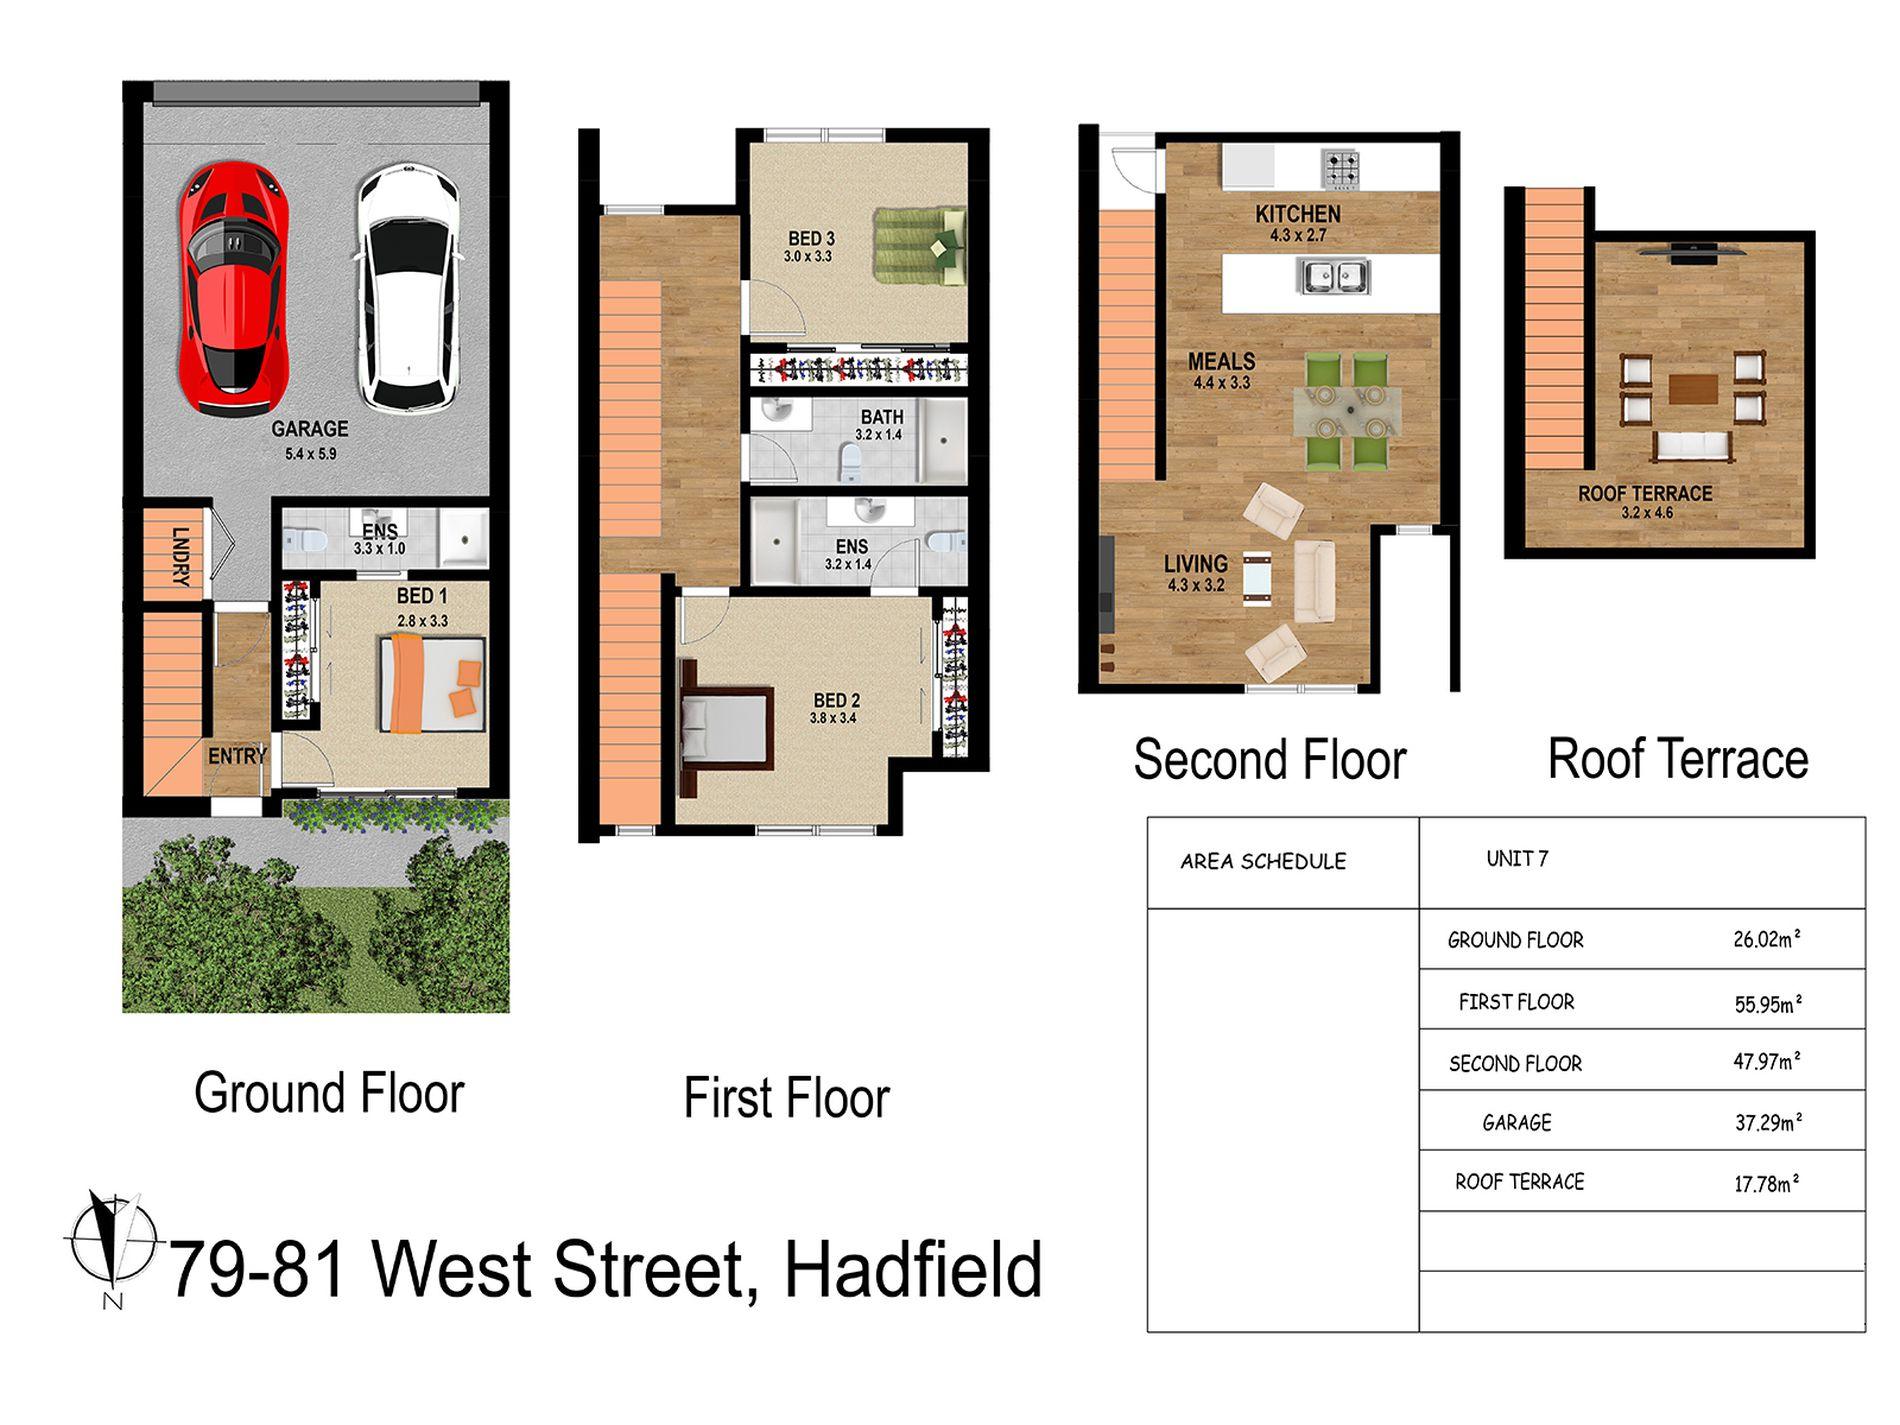 79-81 West Street, Hadfield